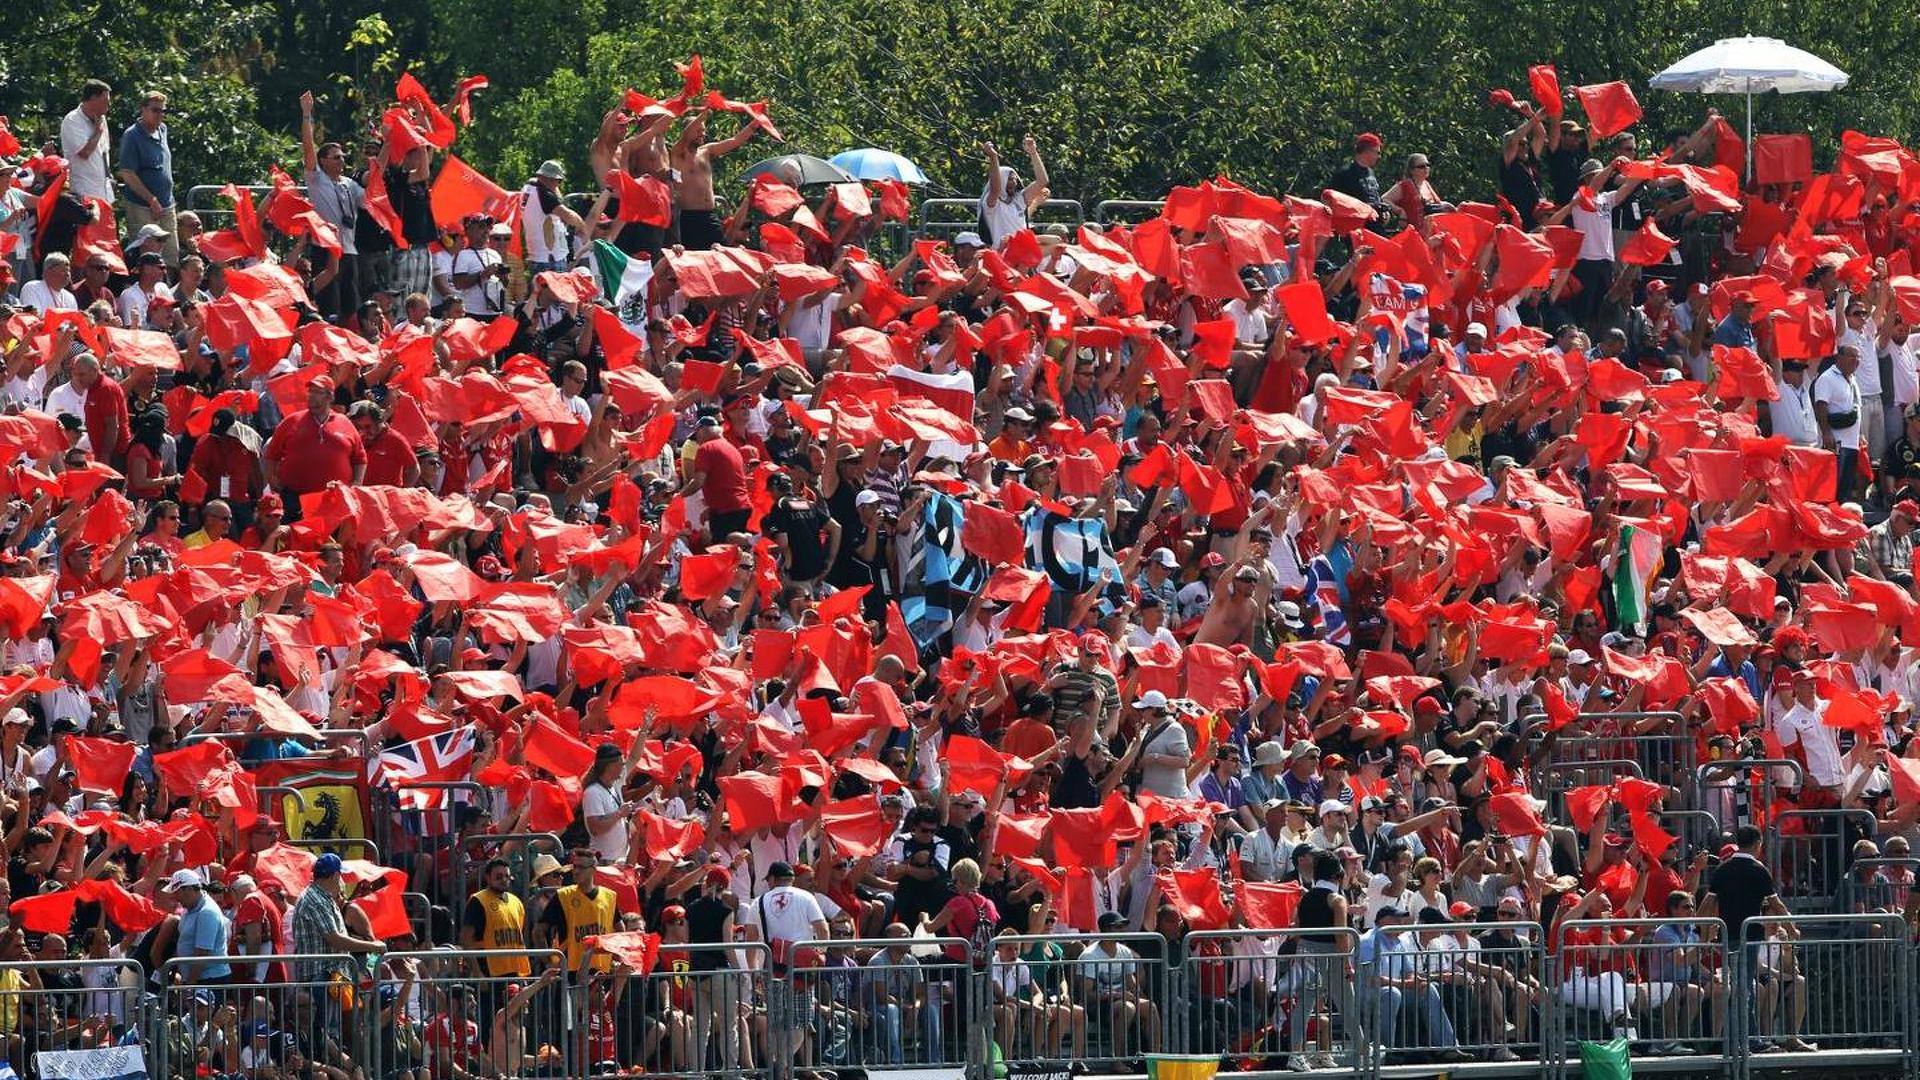 Ferrari should quit F1 if Monza axed - Lombardy